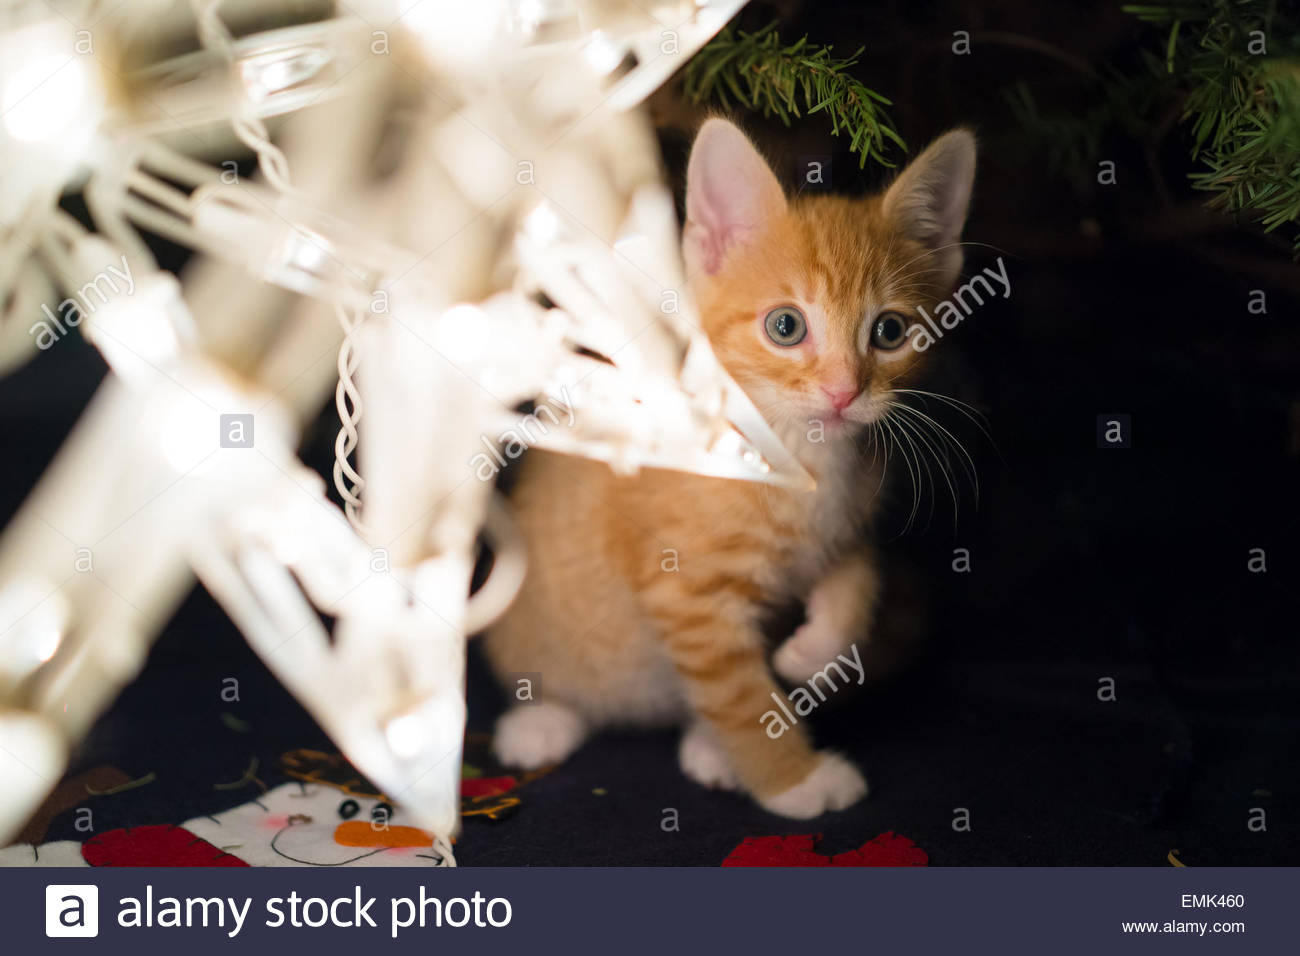 Christmas Cat Photo Stock